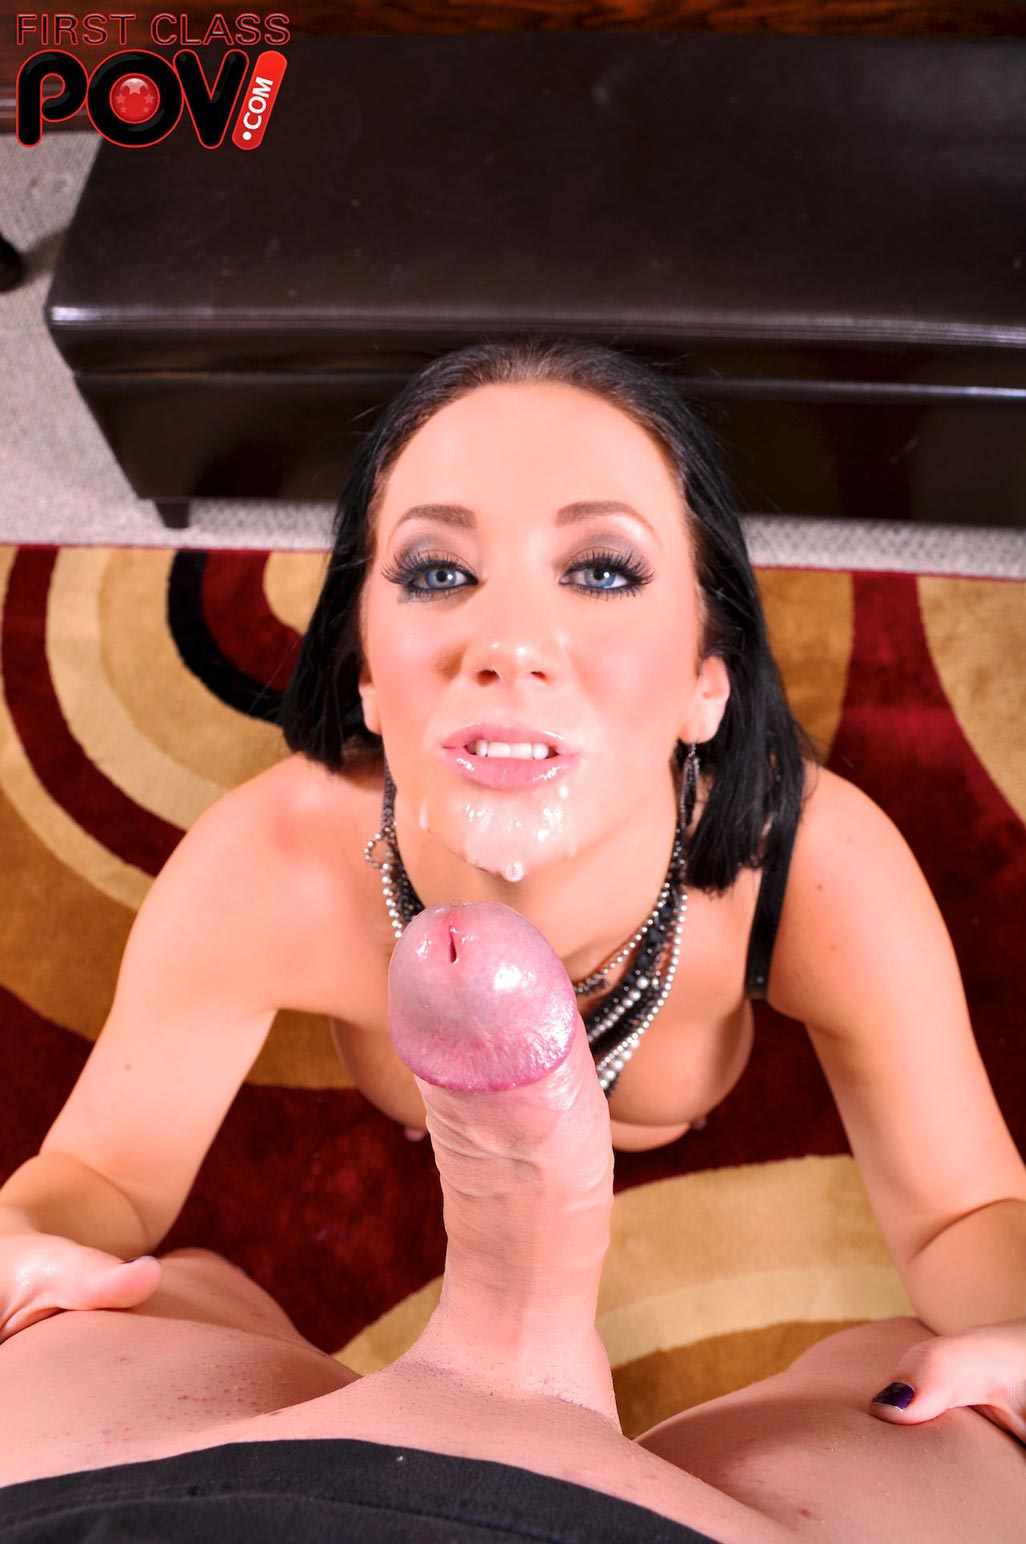 sweet blowjob jayden jaymes sweet blowjob jayden jaymes